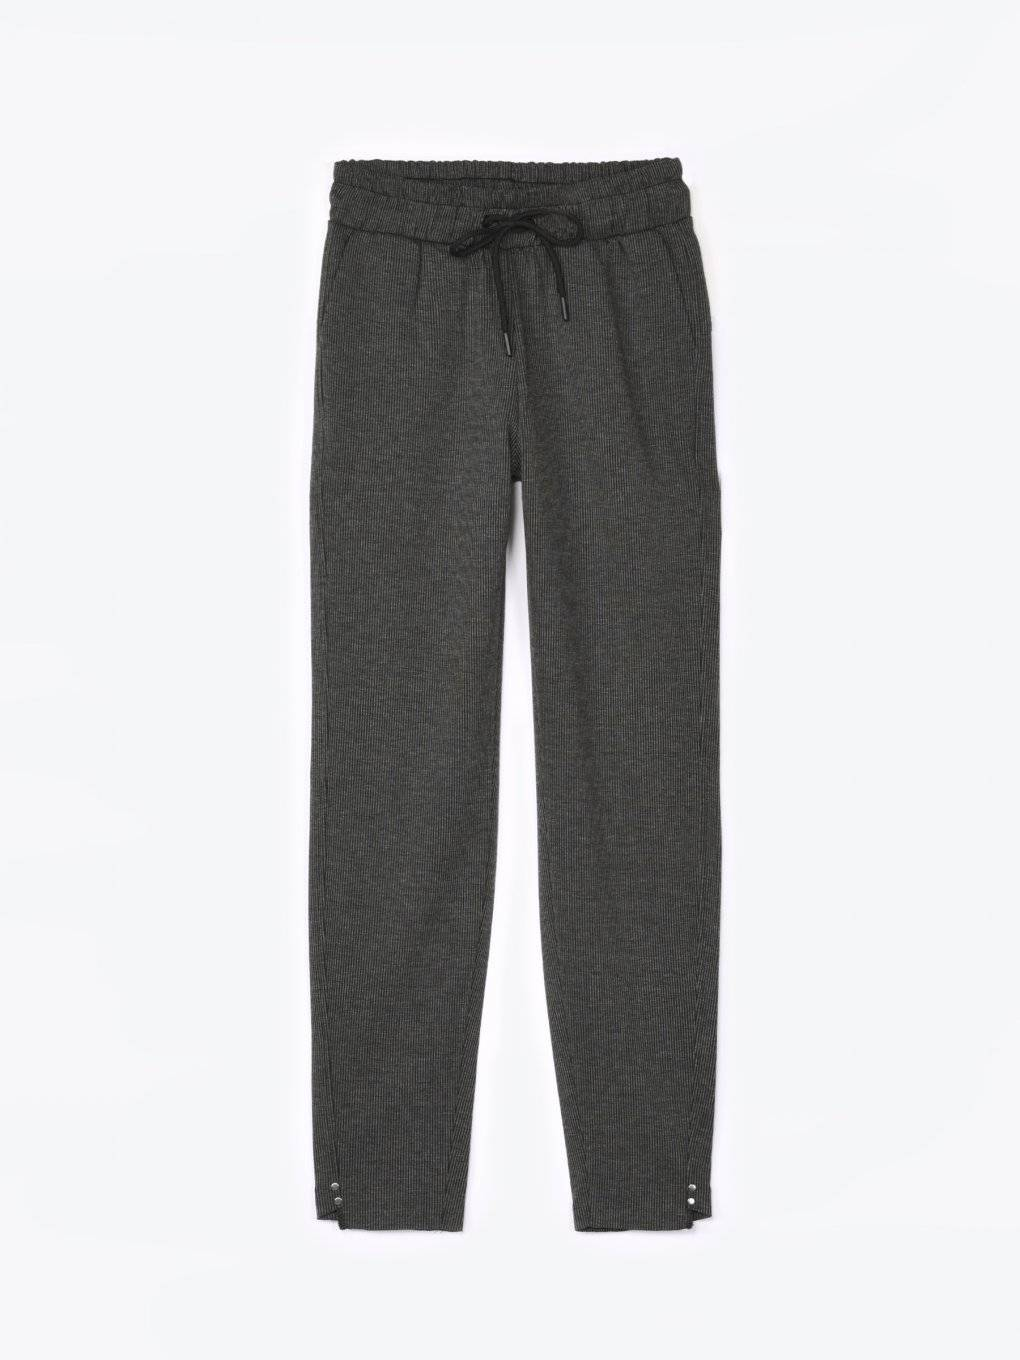 Striped sweatpants with metal rivets on ham